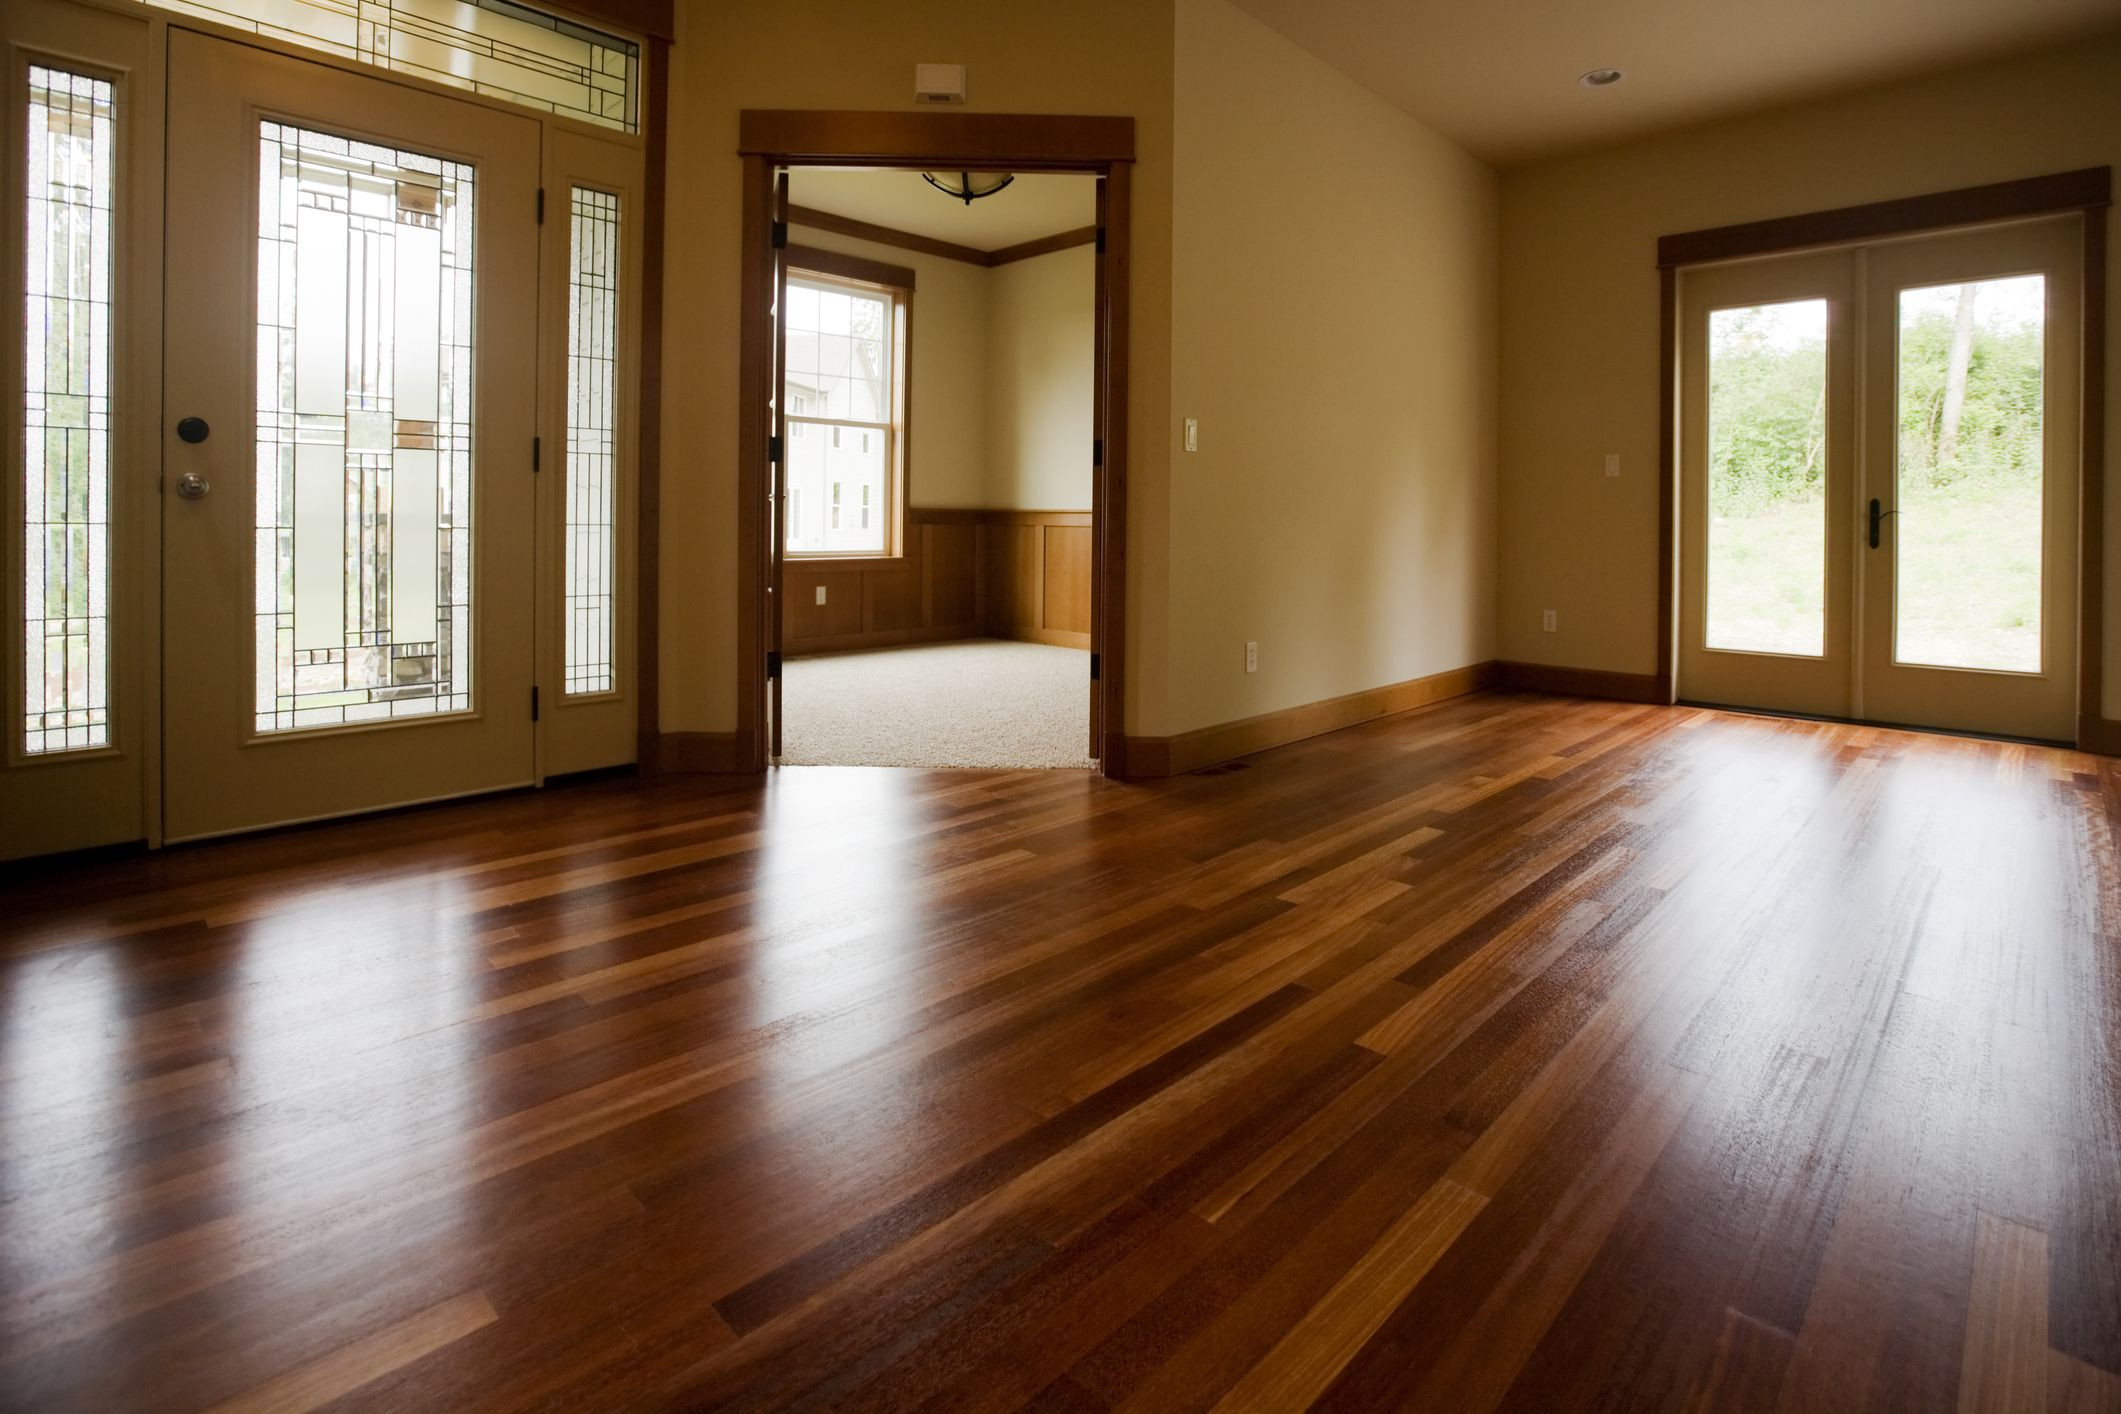 maple leaf engineered hardwood flooring of types of hardwood flooring buyers guide inside gettyimages 157332889 5886d8383df78c2ccd65d4e1